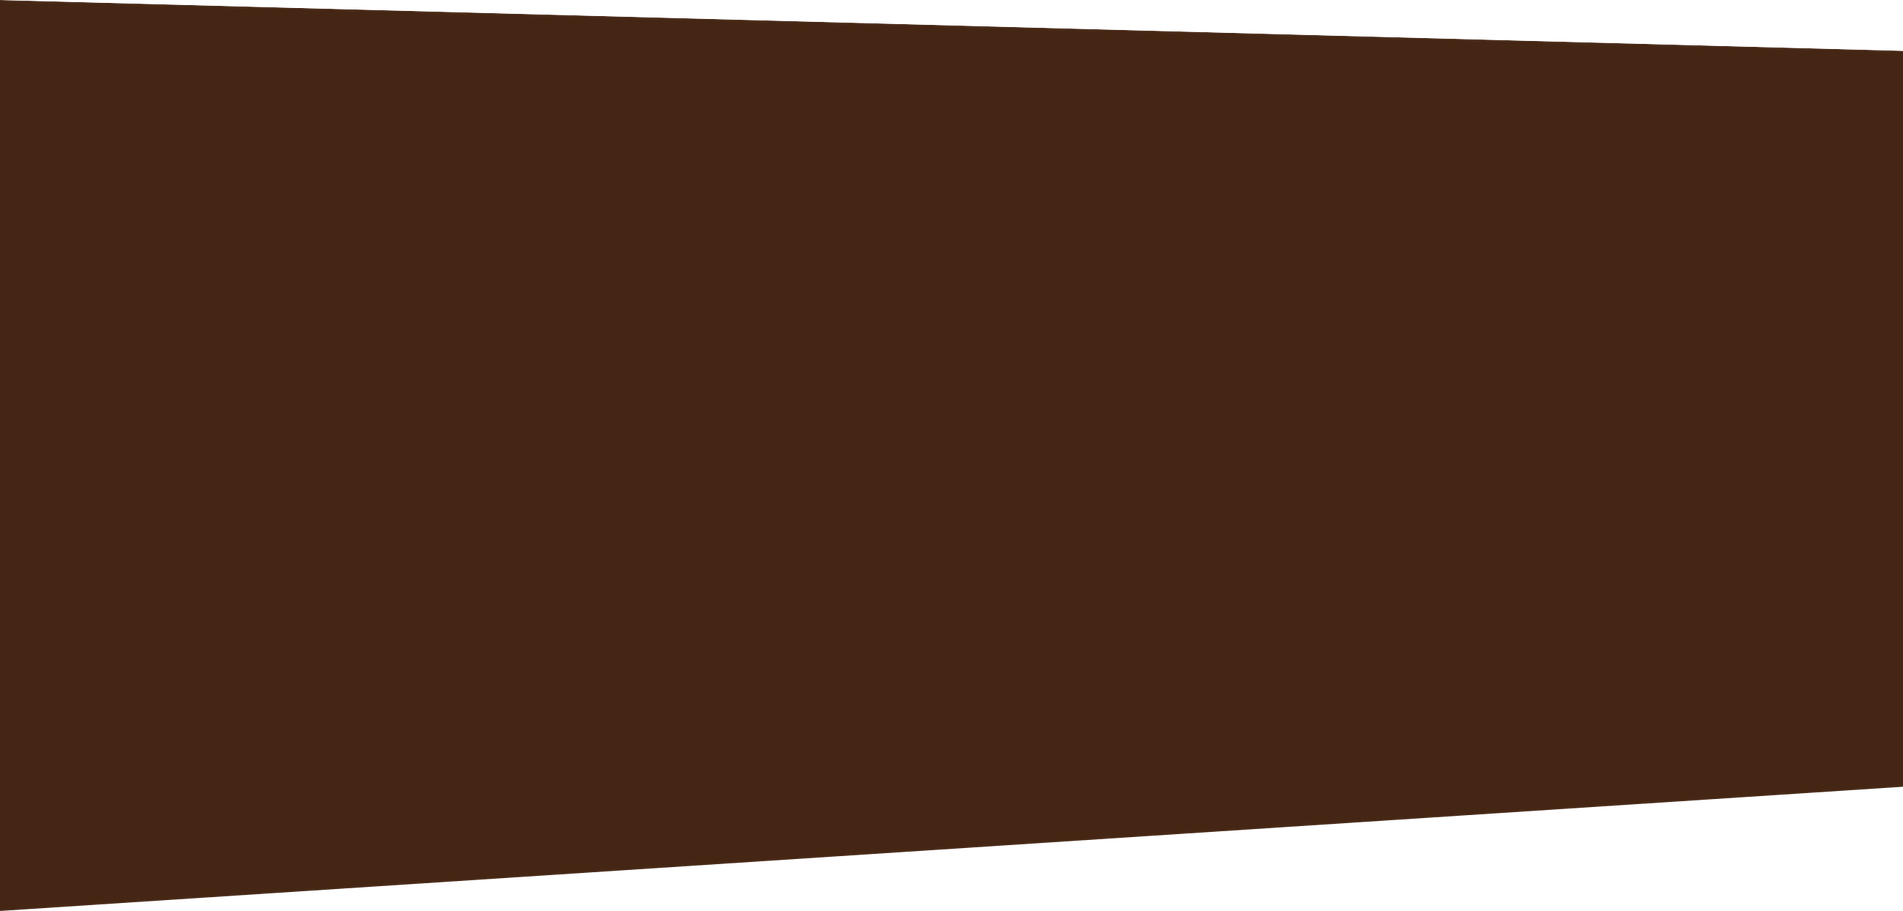 Banner Brown 2.png